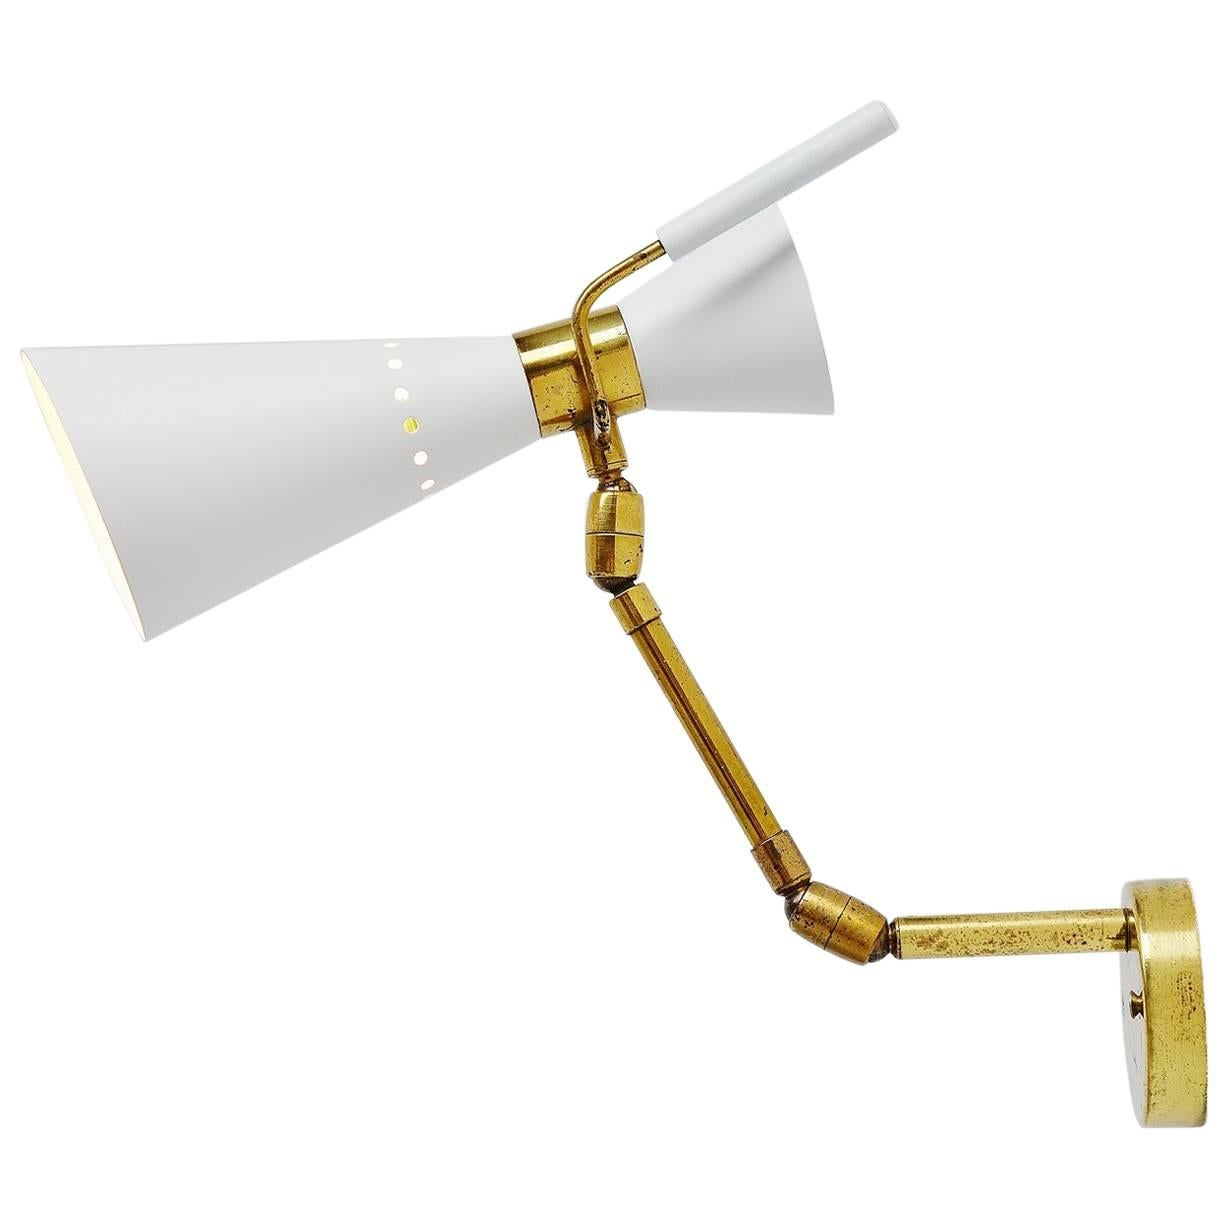 Stilnovo Attributed Diabolo Wall Lamp Adjustable Sconce, Italy, 1950